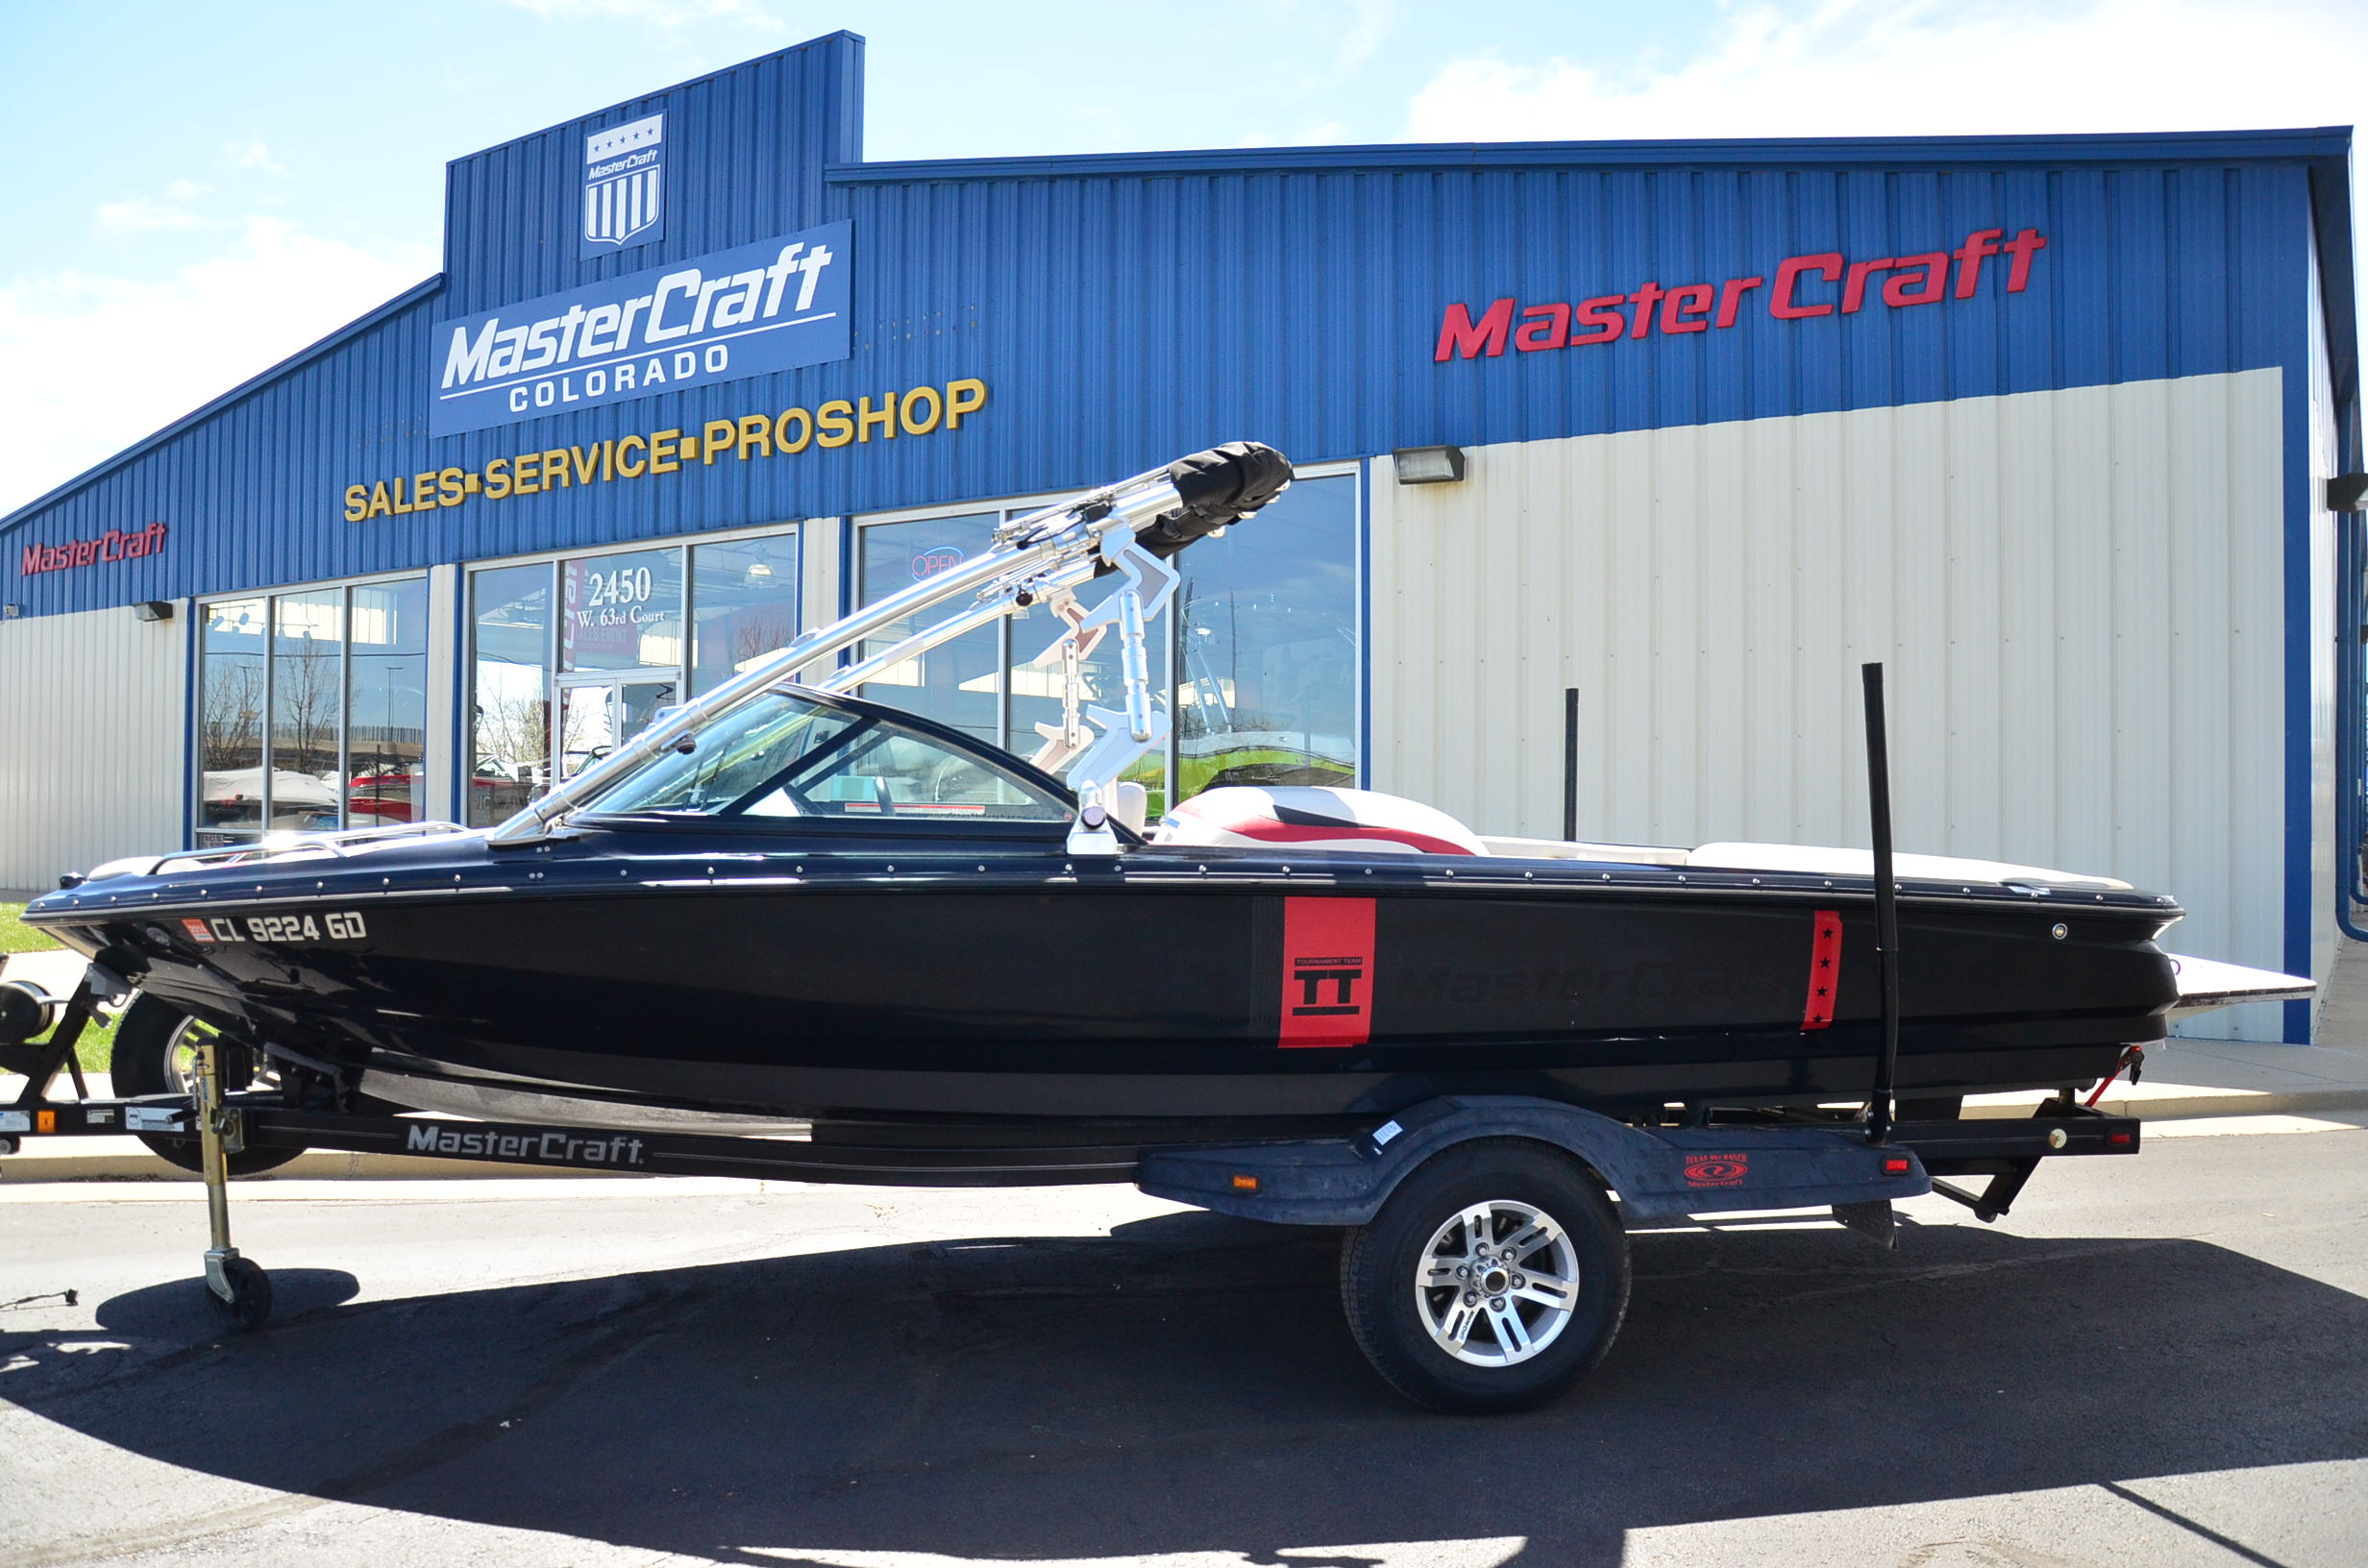 Boat Company Mastercraft X10 Trailer Wiring Diagram Images